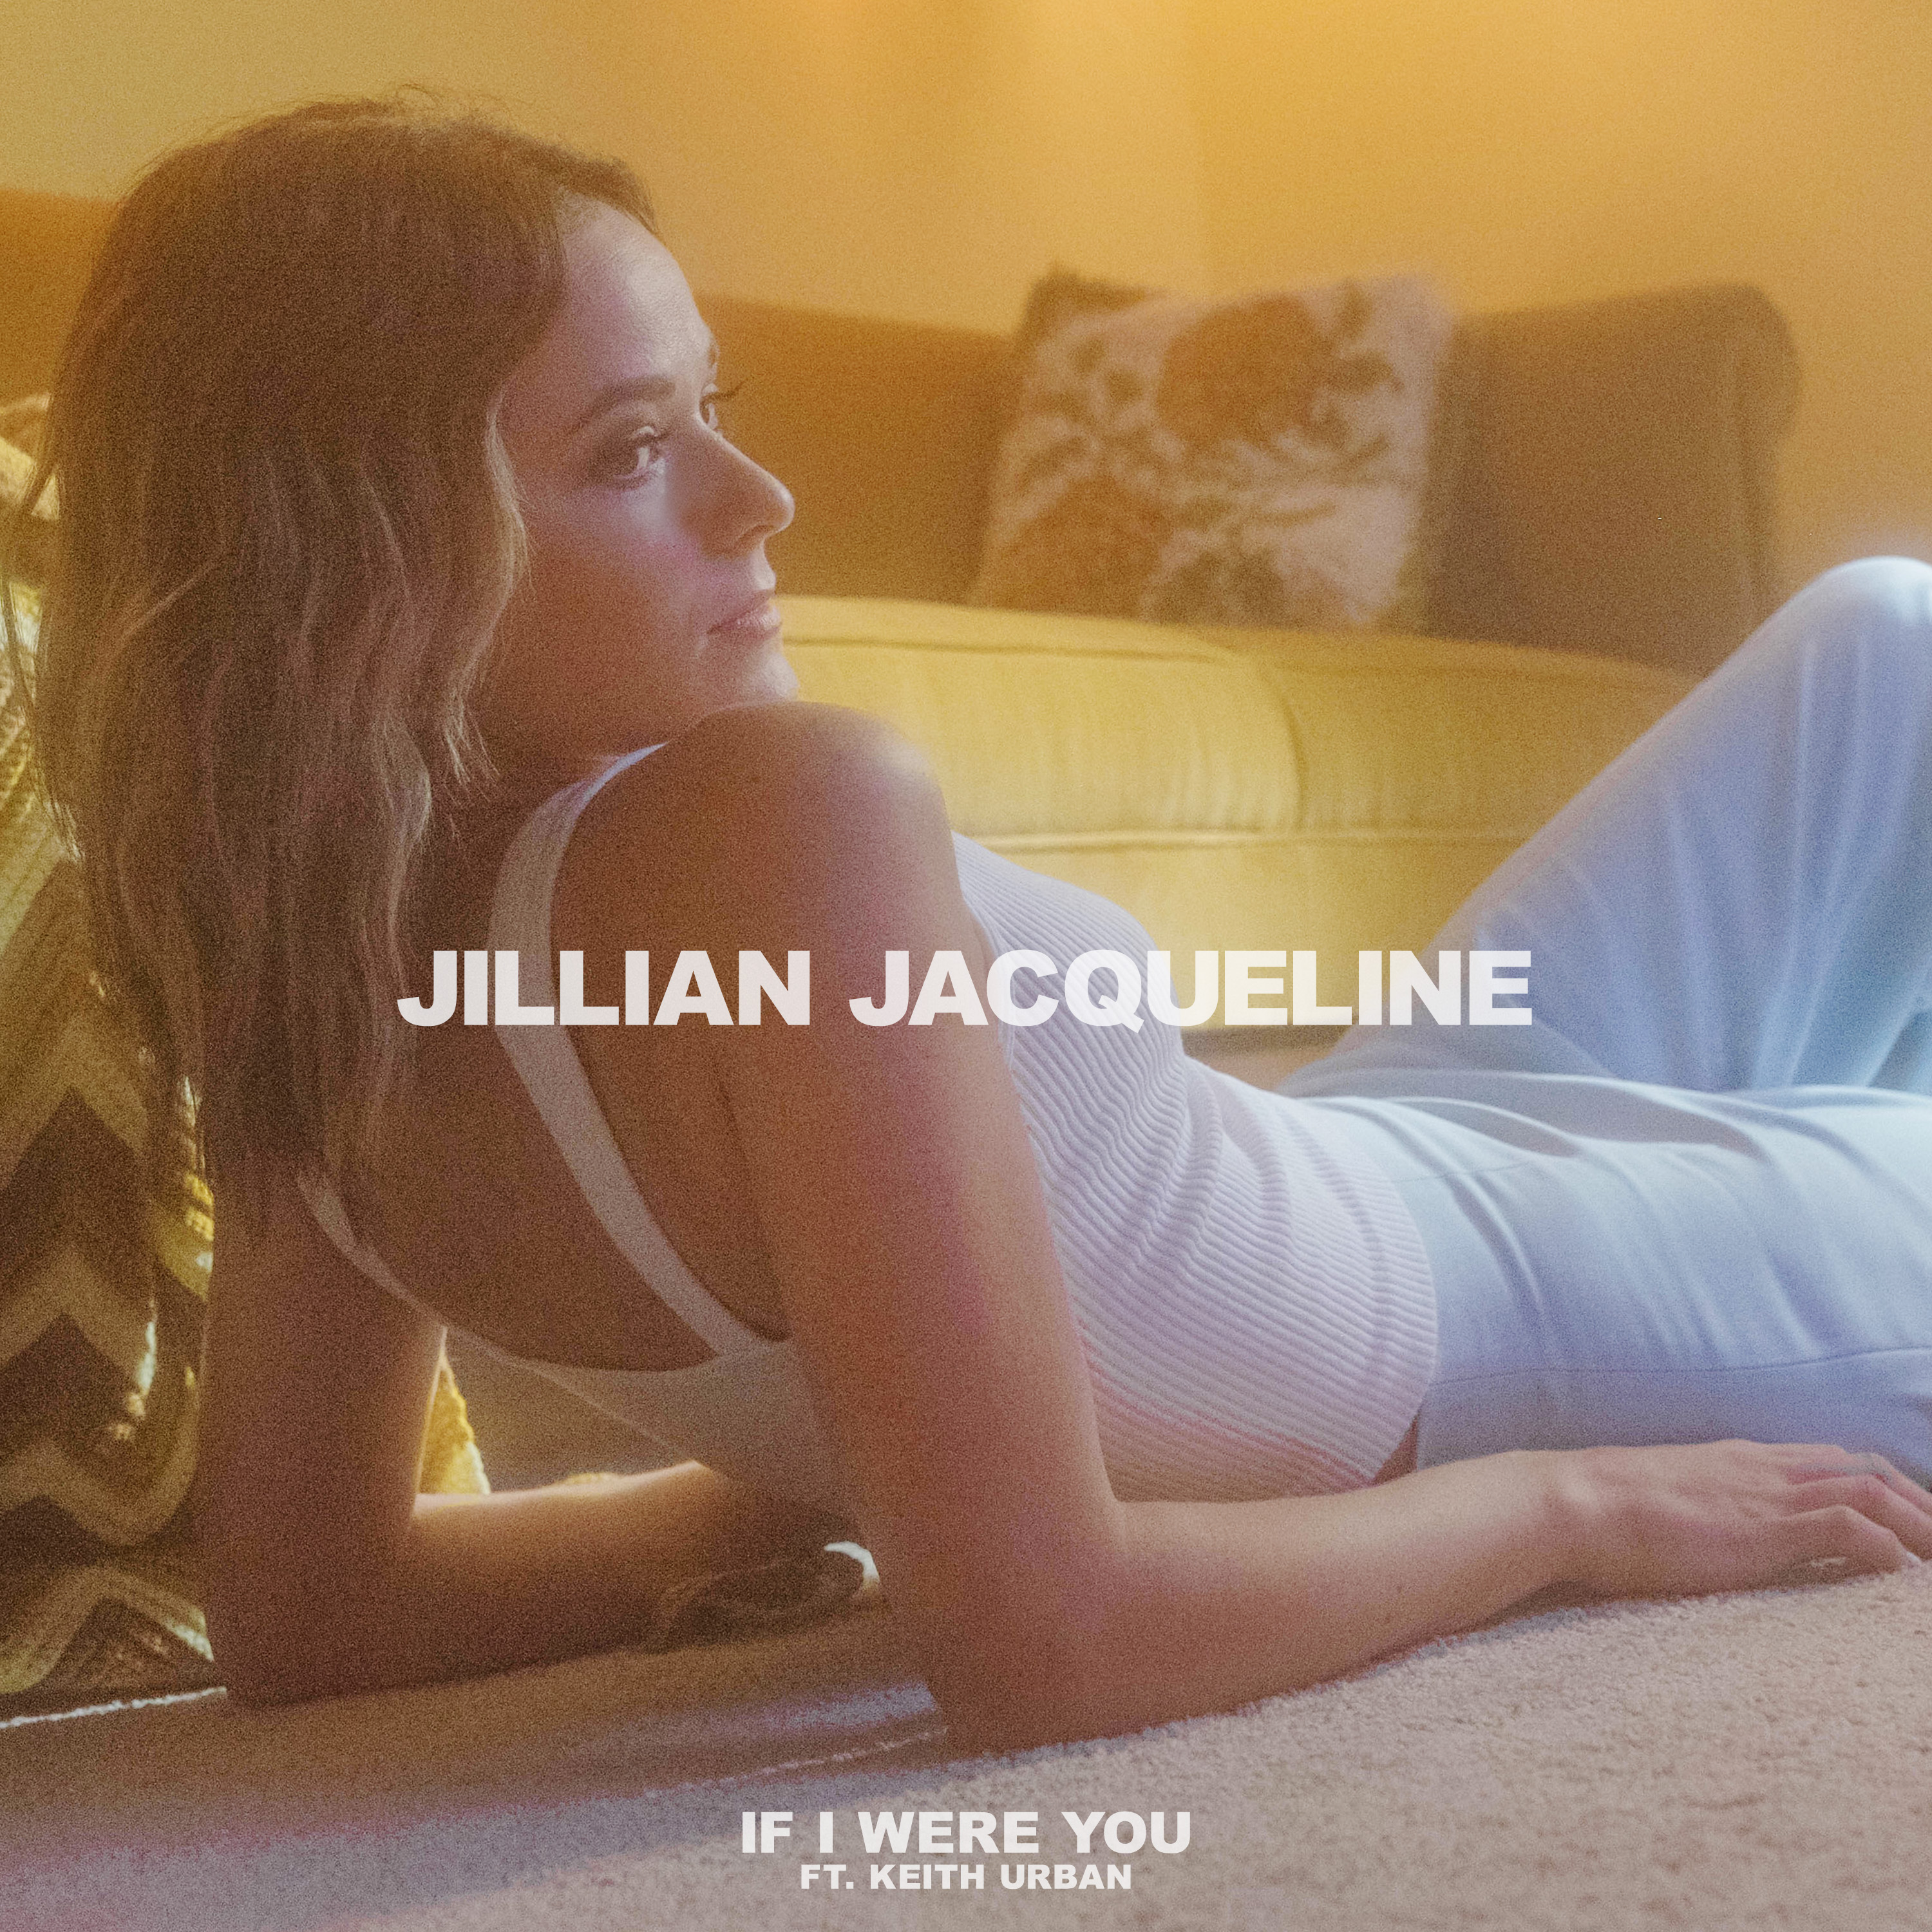 Jillian Jacqueline Gets Introspective with 'If I Were You'